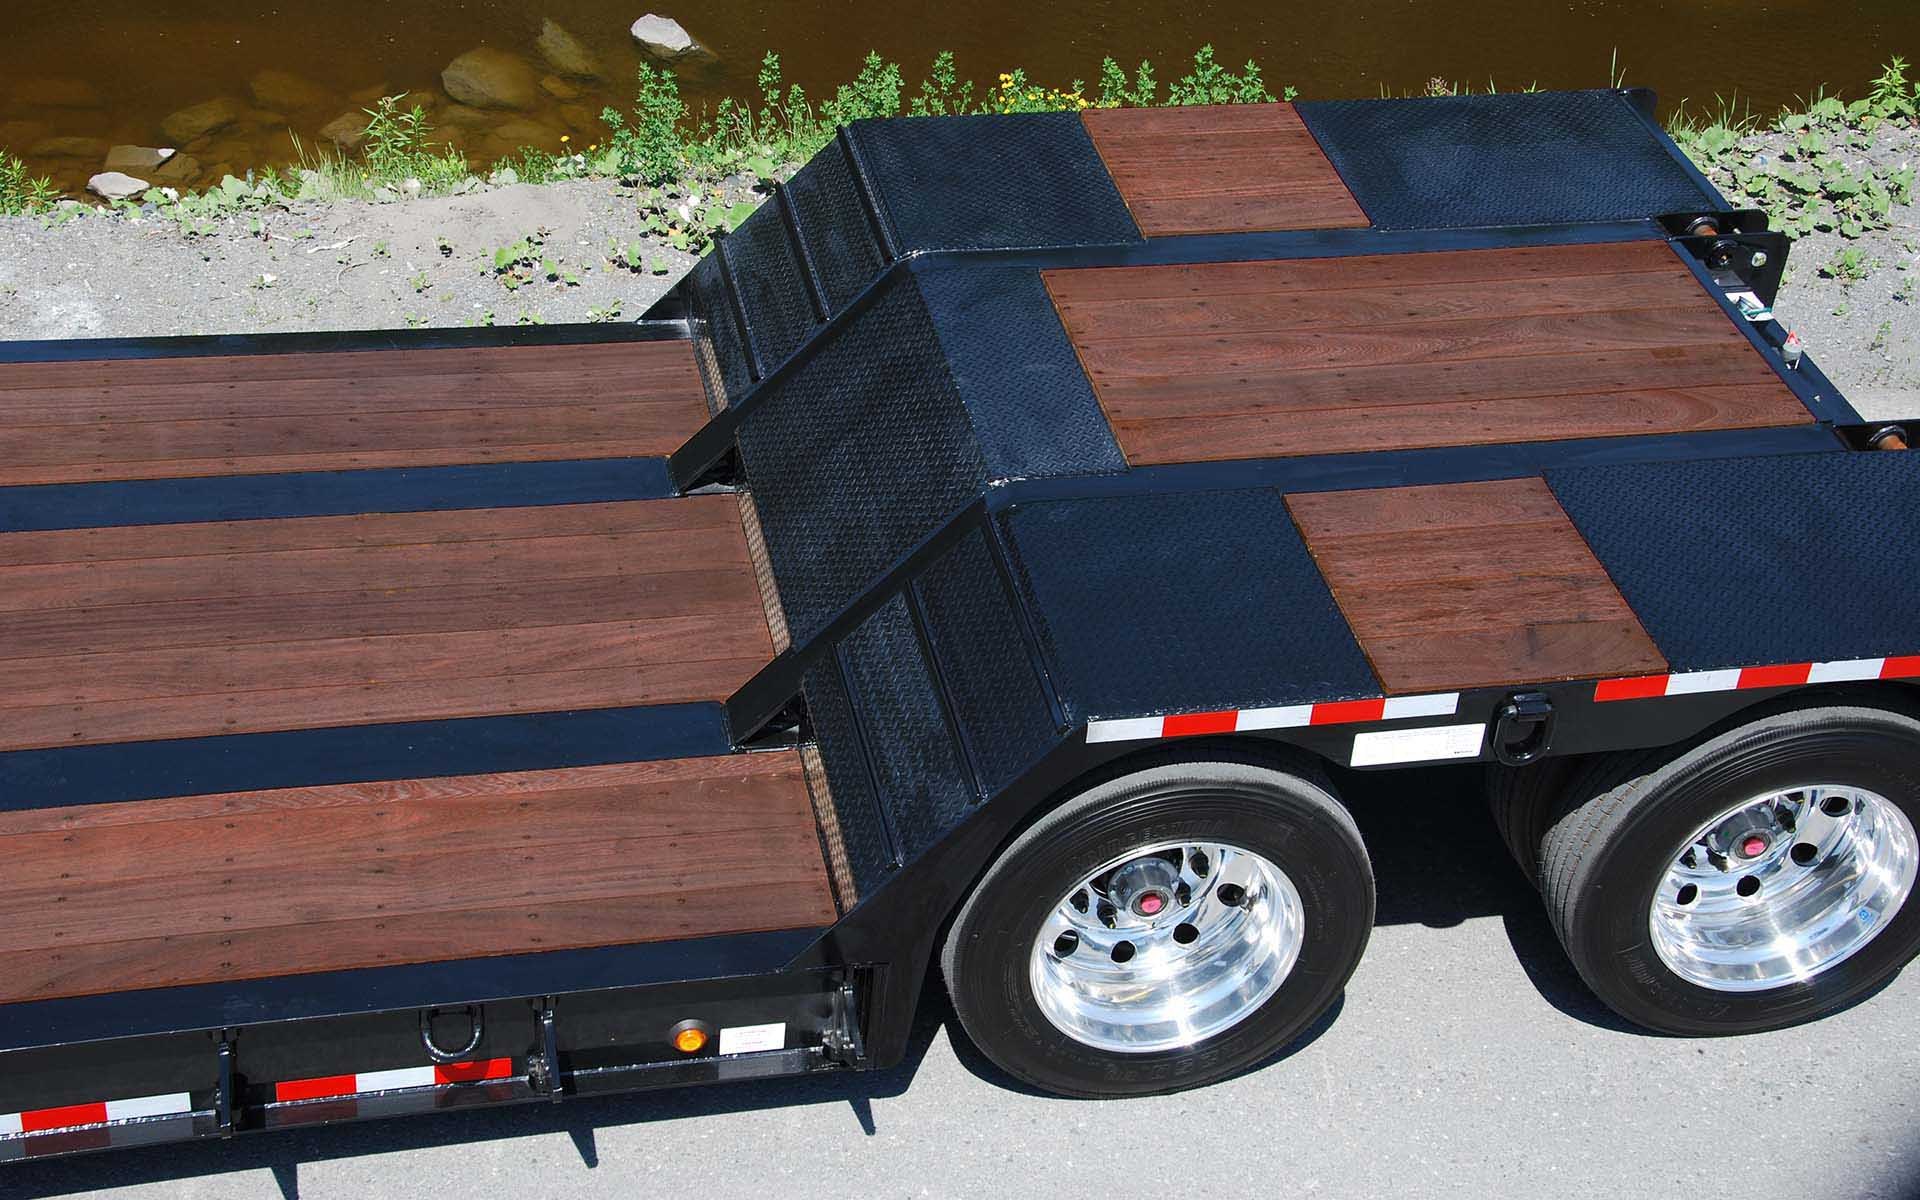 Manac Flatbed by River with APITONG OIL Exterior Oil Based Wood Stain